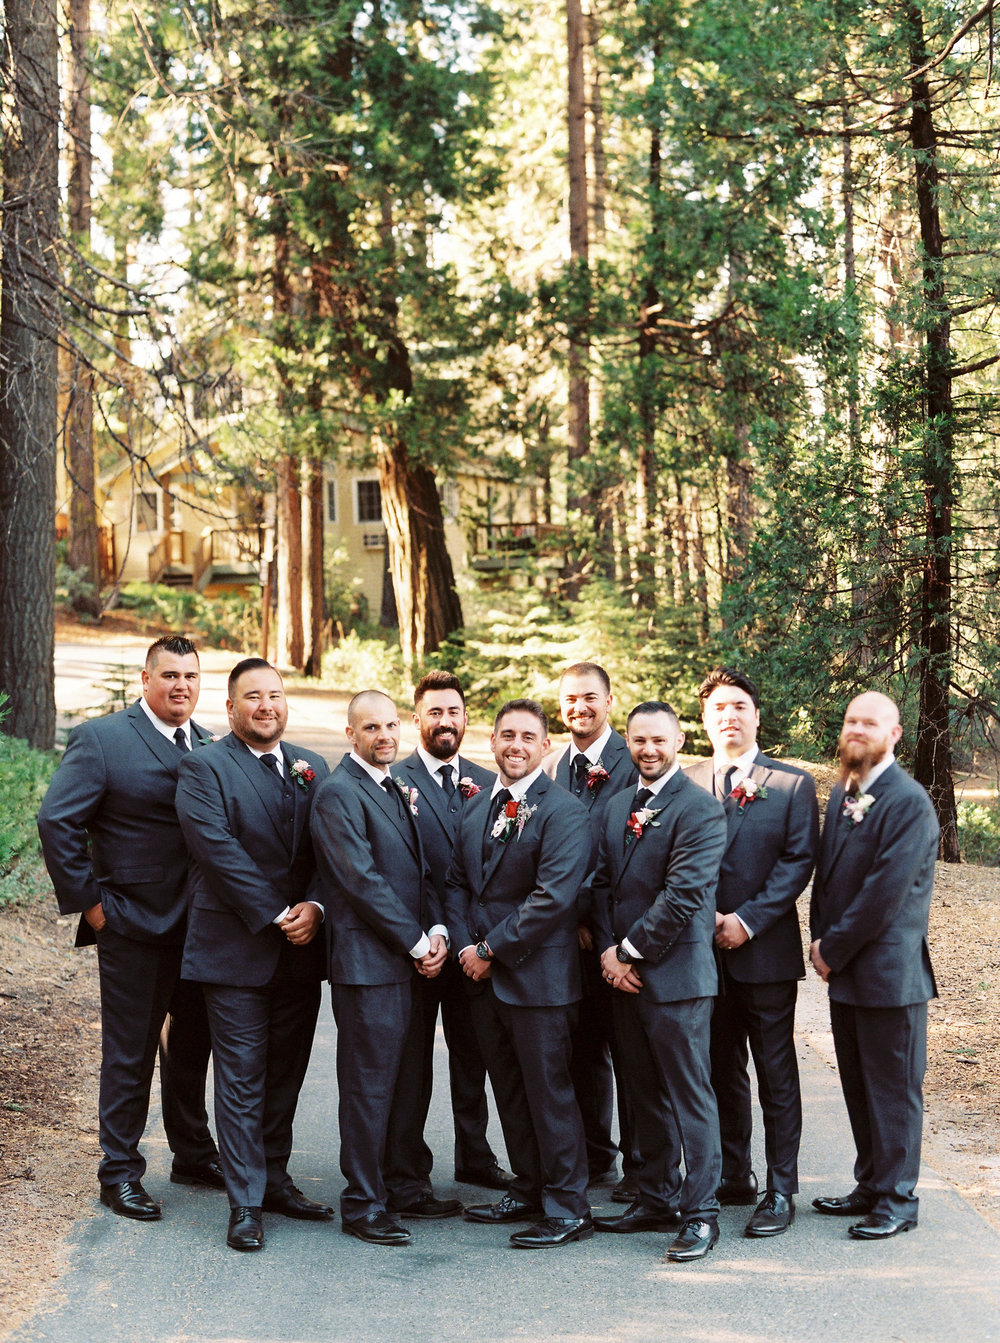 Tenaya-lodge-wedding-at-yosemite-national-park-california-96.jpg